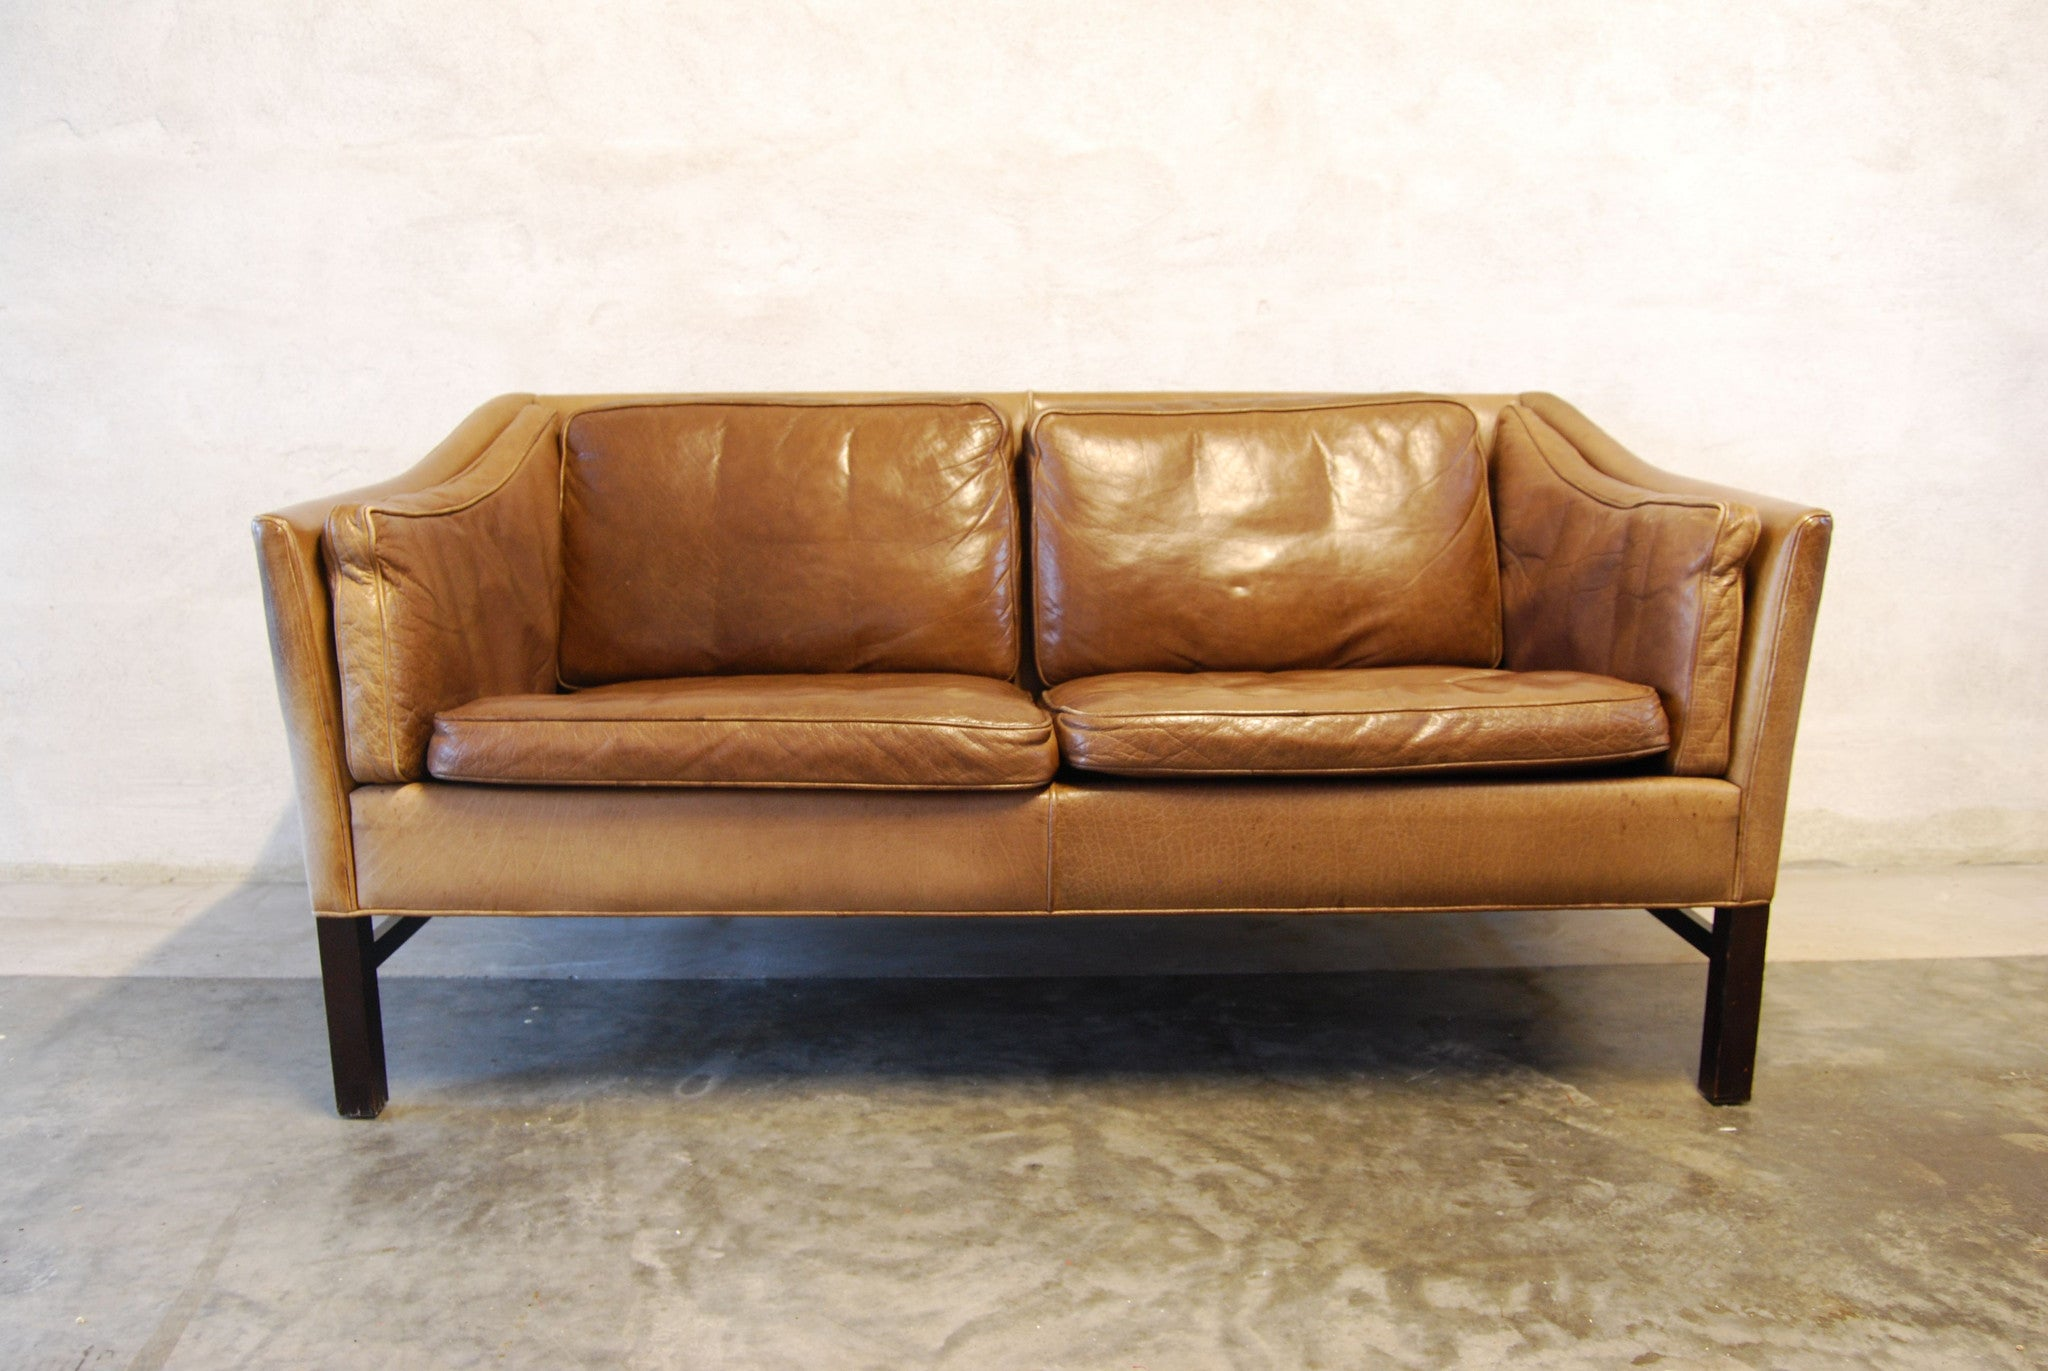 Chase & Sorensen Two seat leather sofa with scalloped back